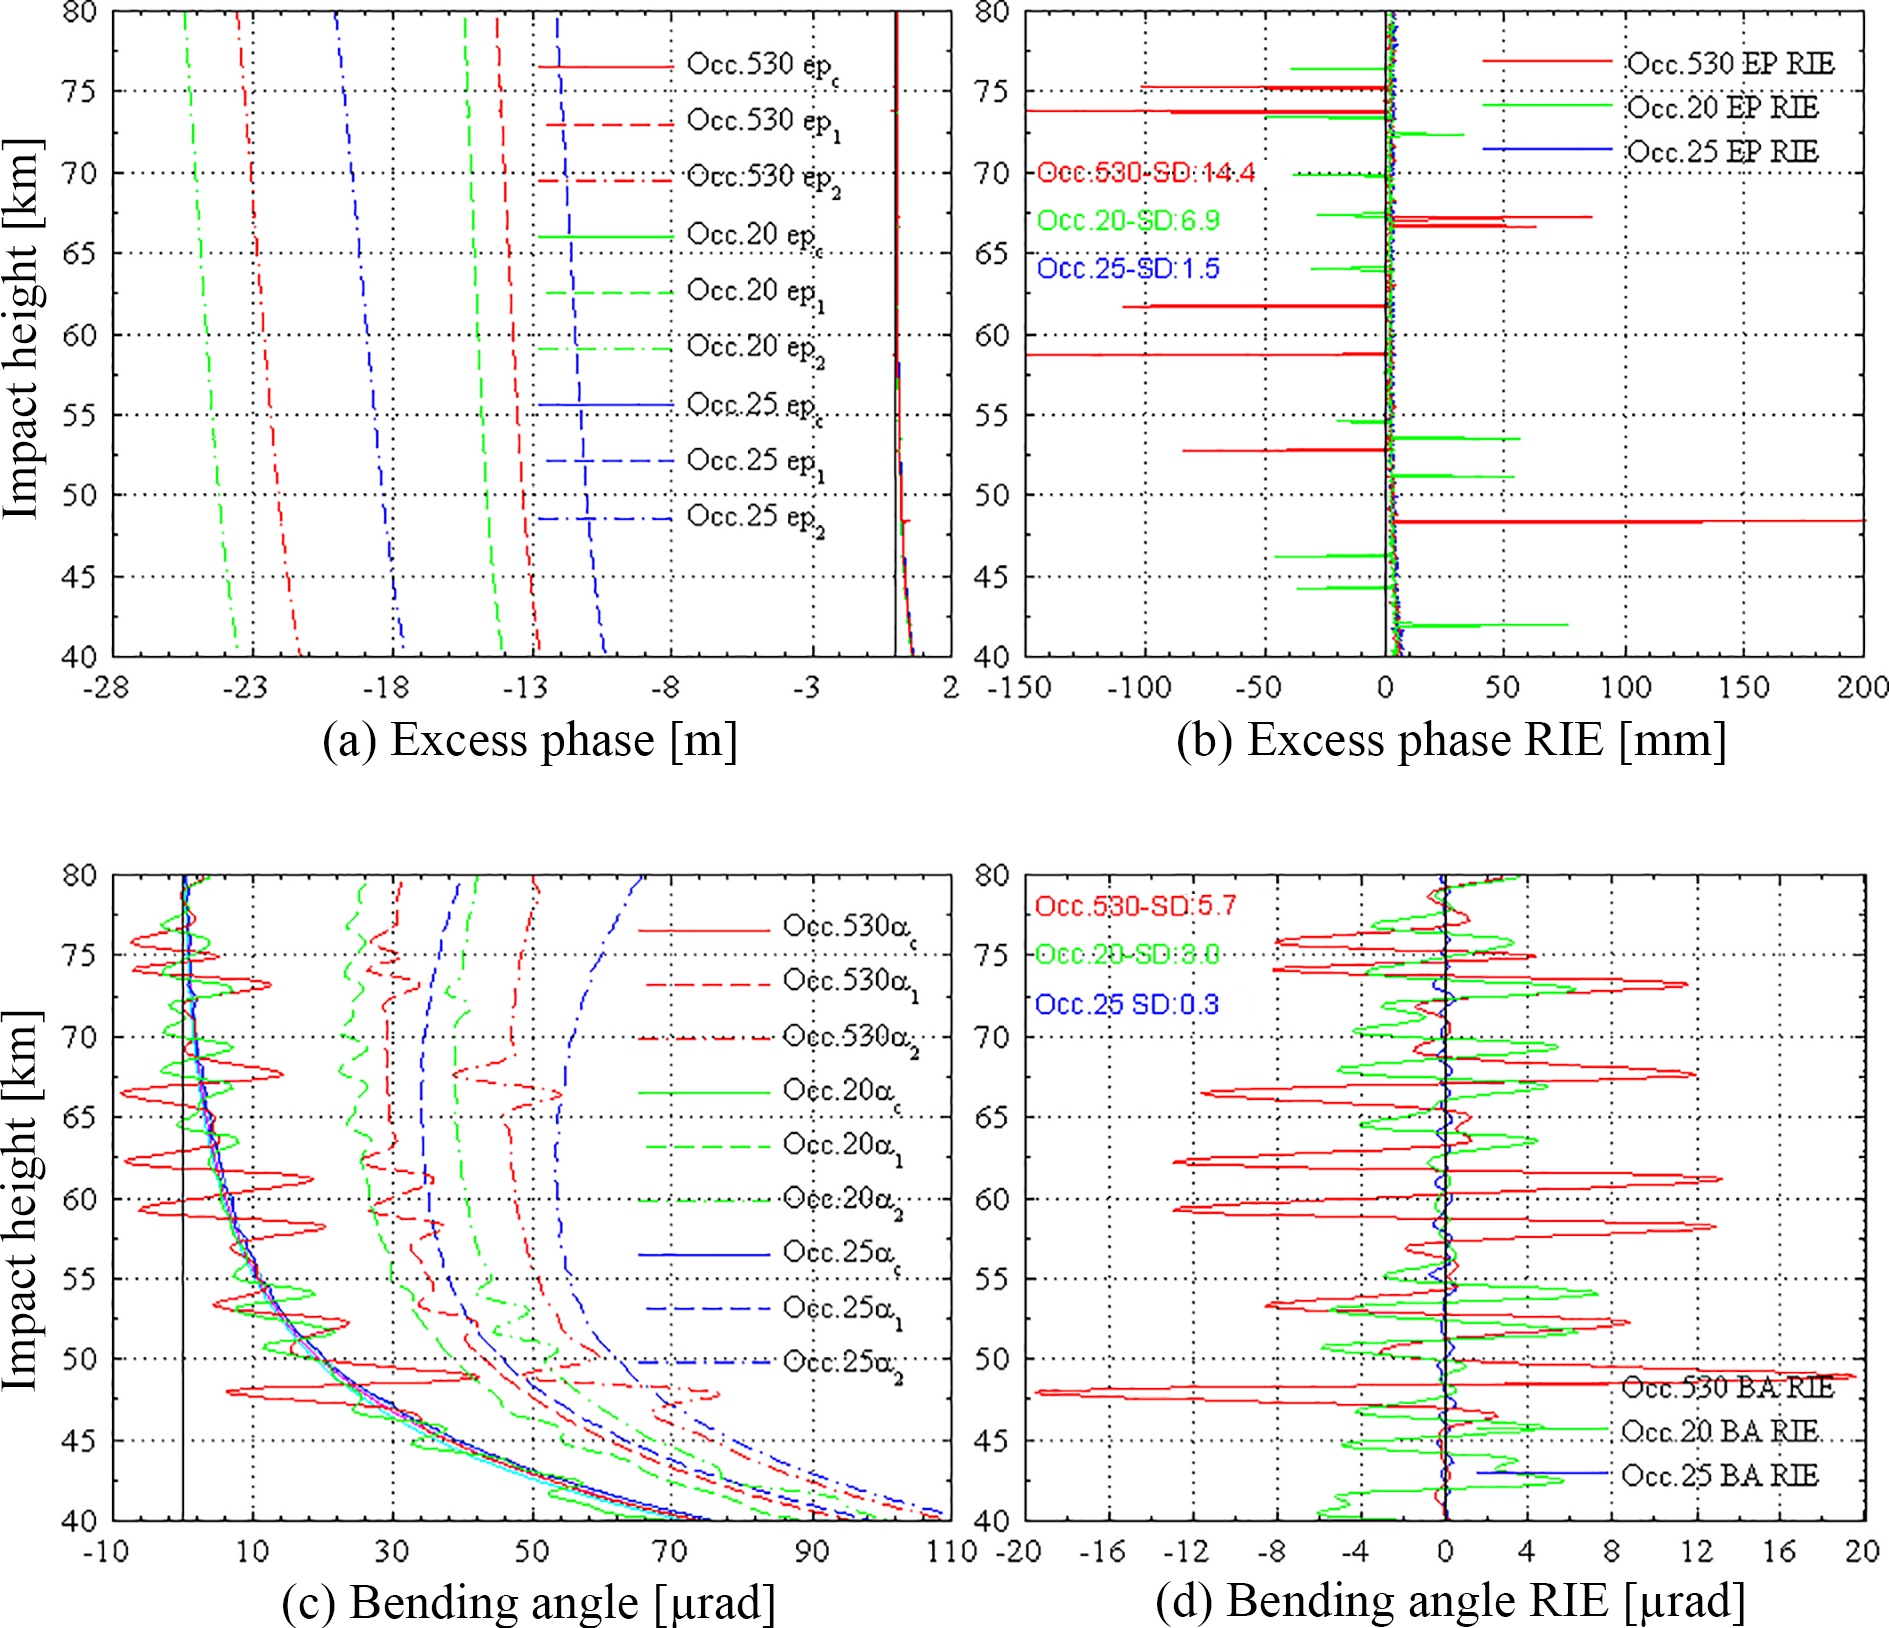 AMT - Analysis of ionospheric structure influences on residual